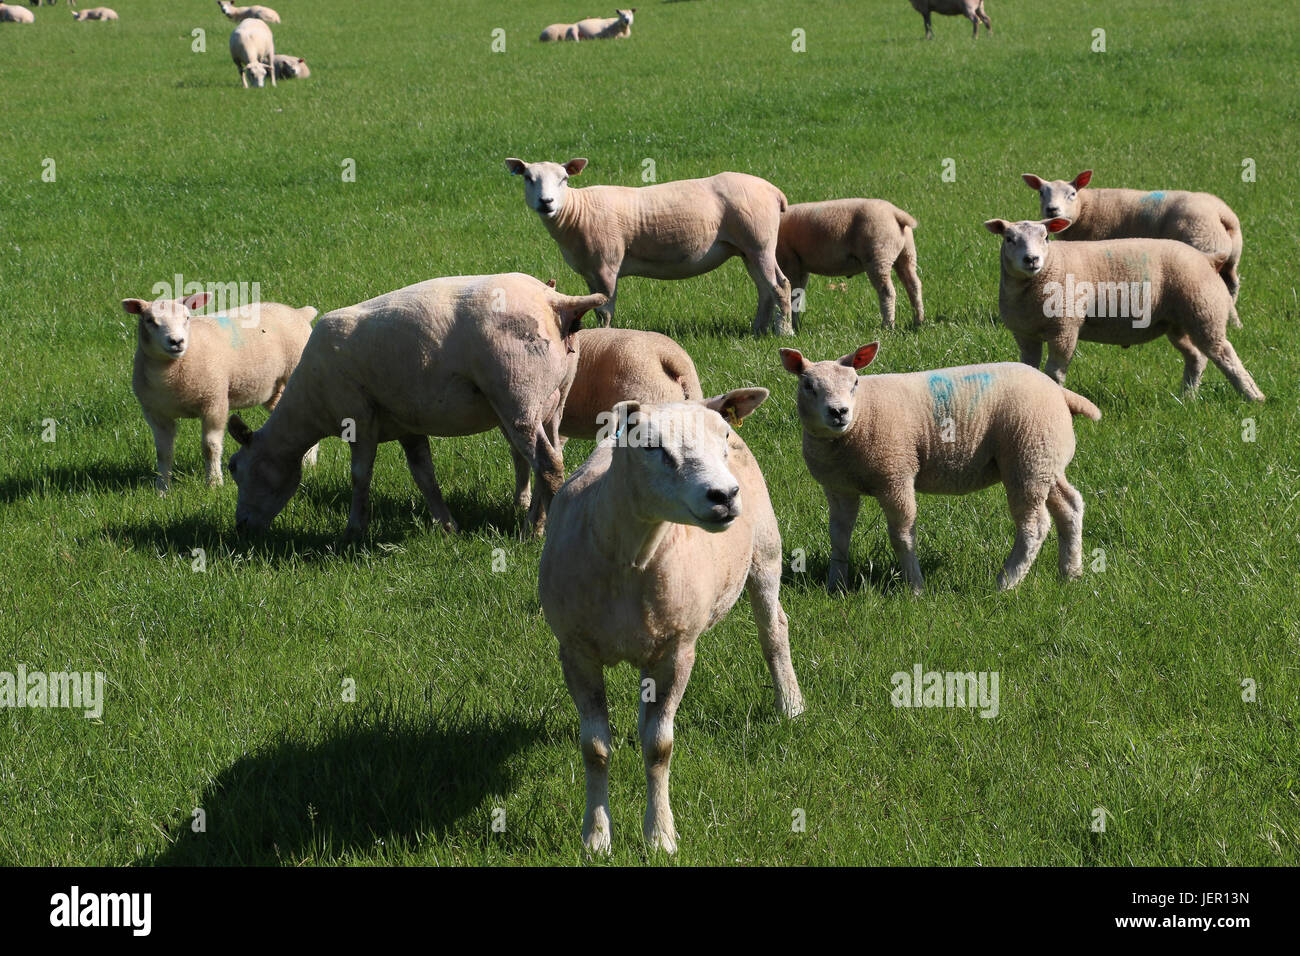 A flock of newly-sheared ewes and lambs cast shadows as they.stand watching in a green grassy field in the spring - Stock Image